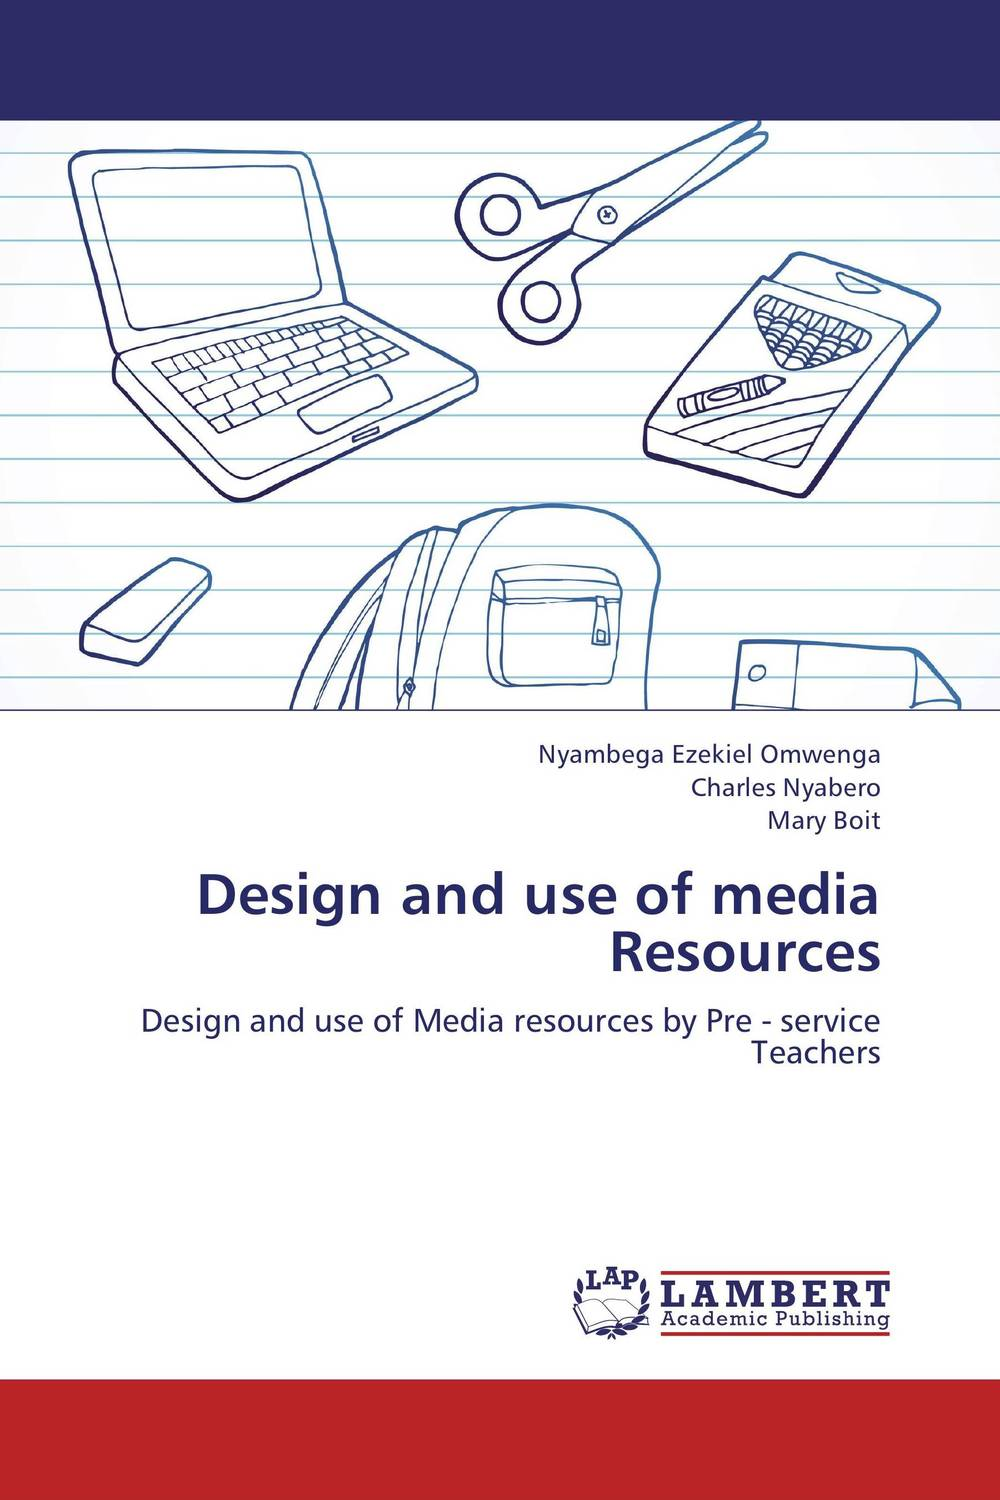 Design and use of media Resources akhtar hussain and devendra kumar media information resources